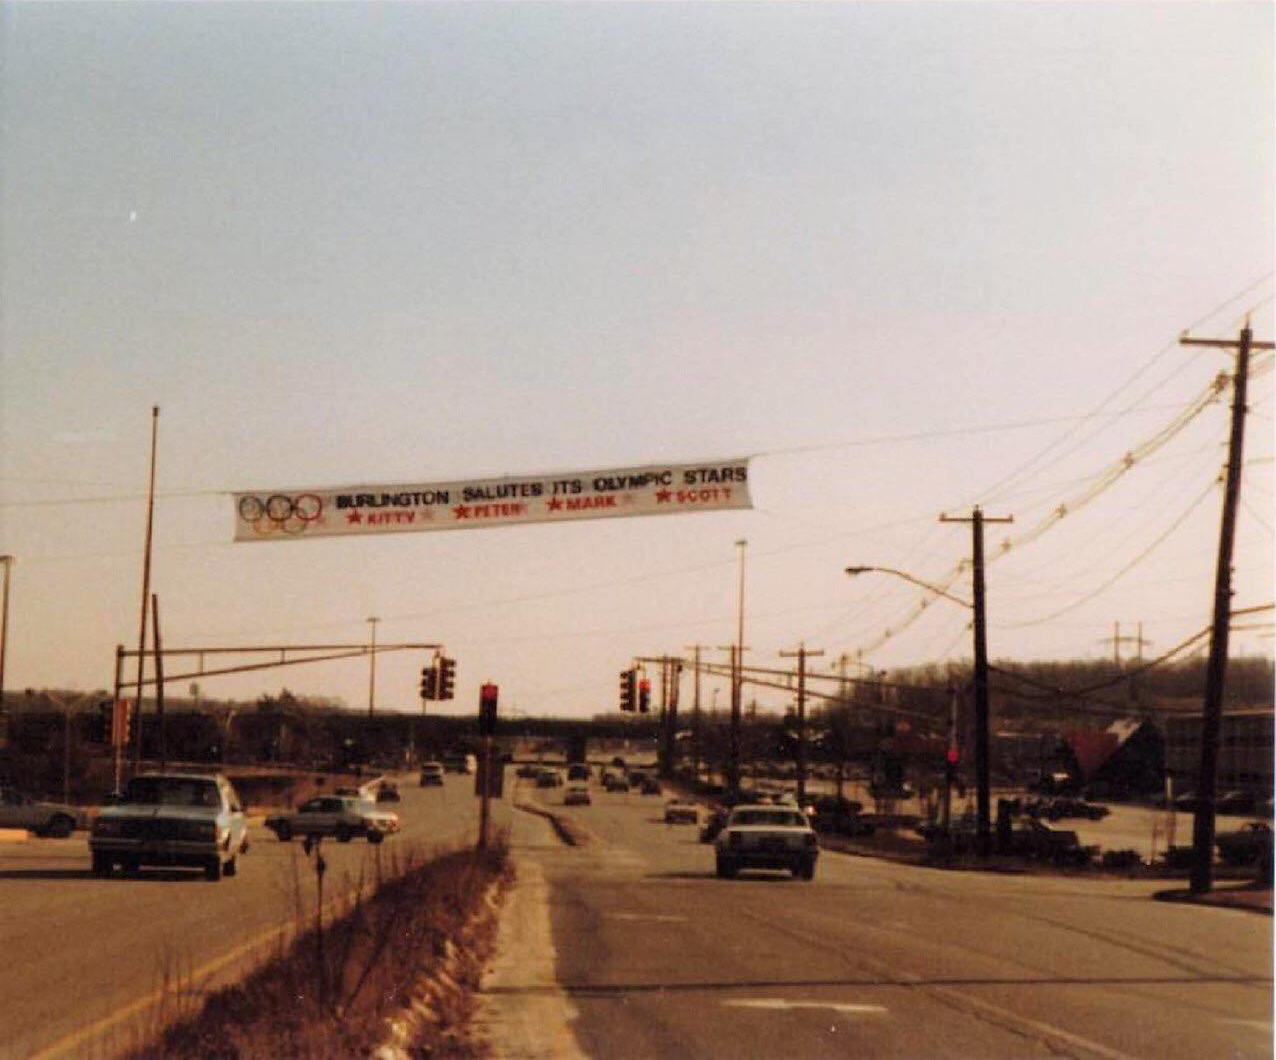 Olympians banner on Turnpike